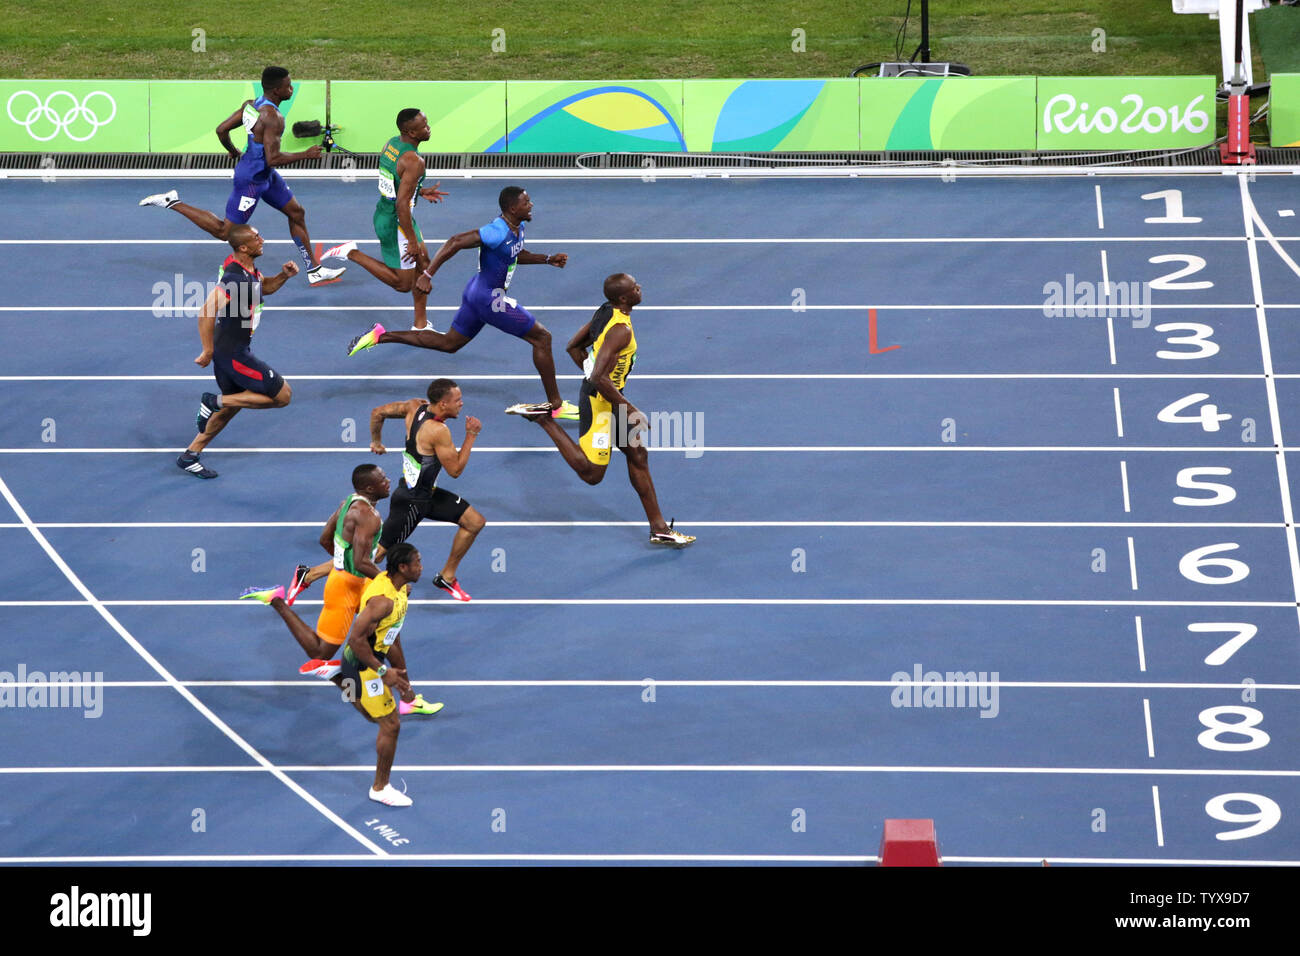 Aug 09, 2016 · the aussies were gold medal favourites heading to rio, and they didn't disappoint. Jamaica S Usain Bolt Wins The Men S 100m Final At Olympic Stadium At The 2016 Rio Summer Olympics In Rio De Janeiro Brazil On August 14 2016 Bolt Won Gold With A Time